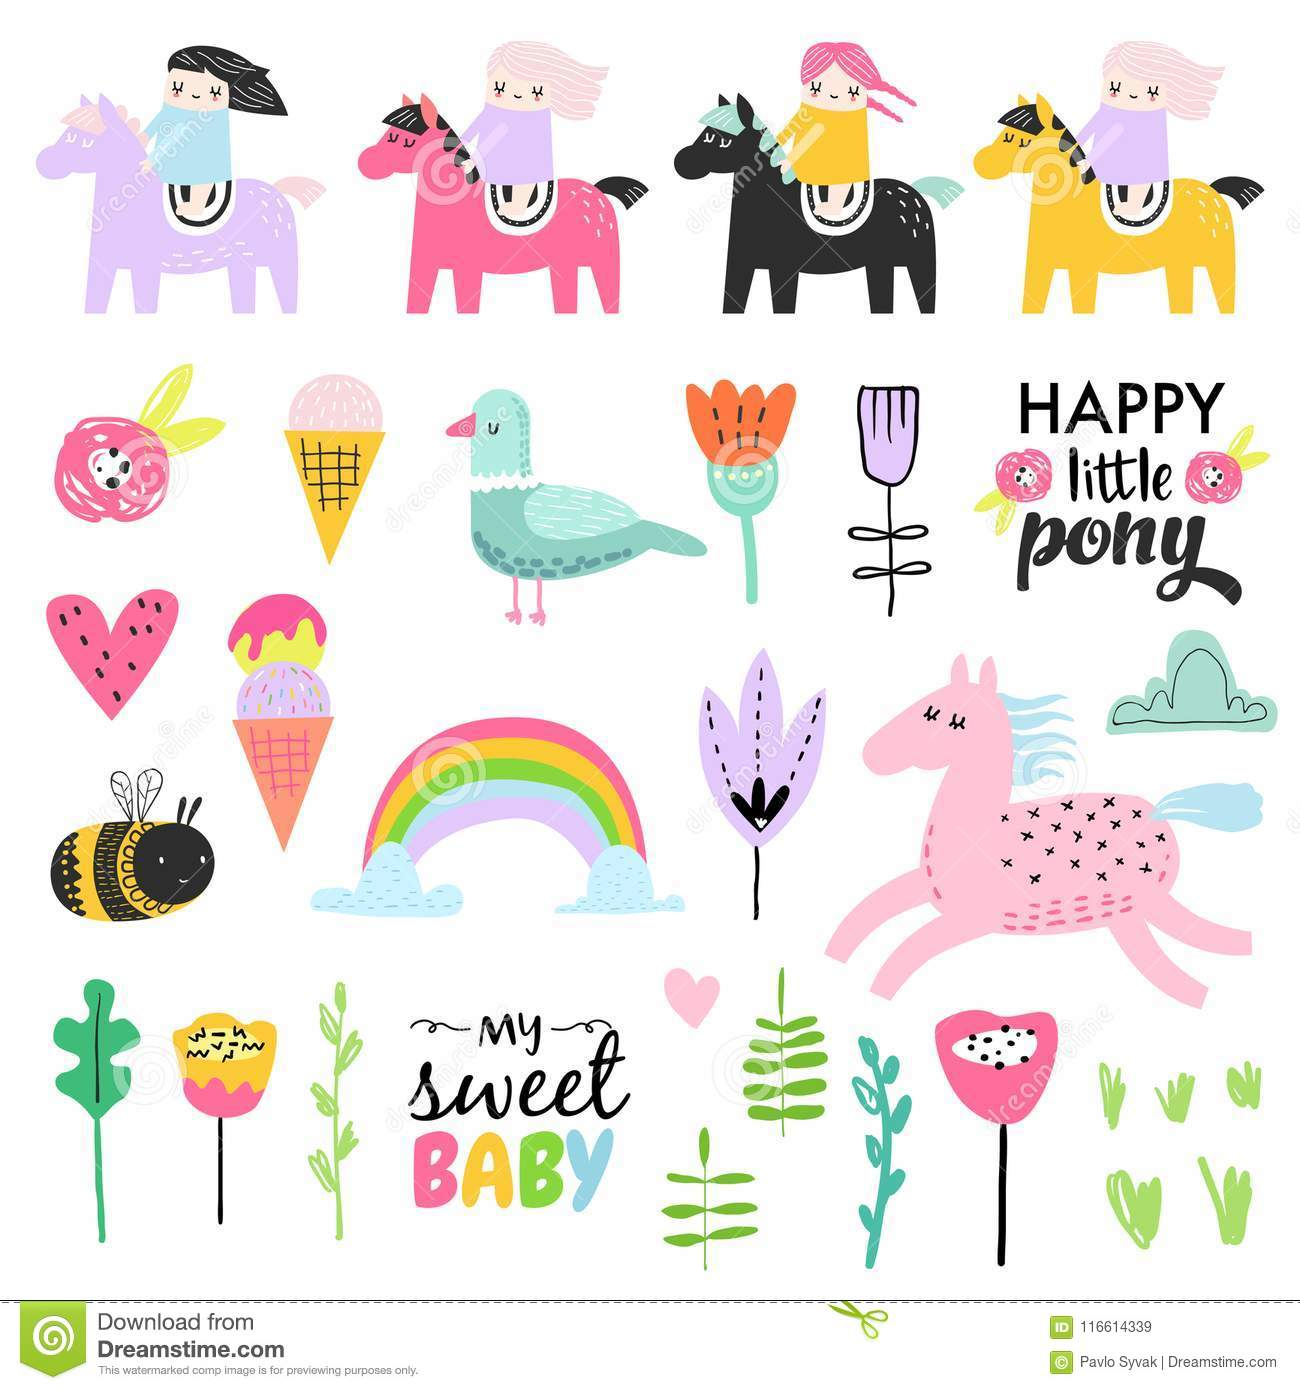 Childish Doodle with Cute Girls, Ponies and Birds. Girlish Hand Drawn Elements Set for Birthday, Decoration, Pattern